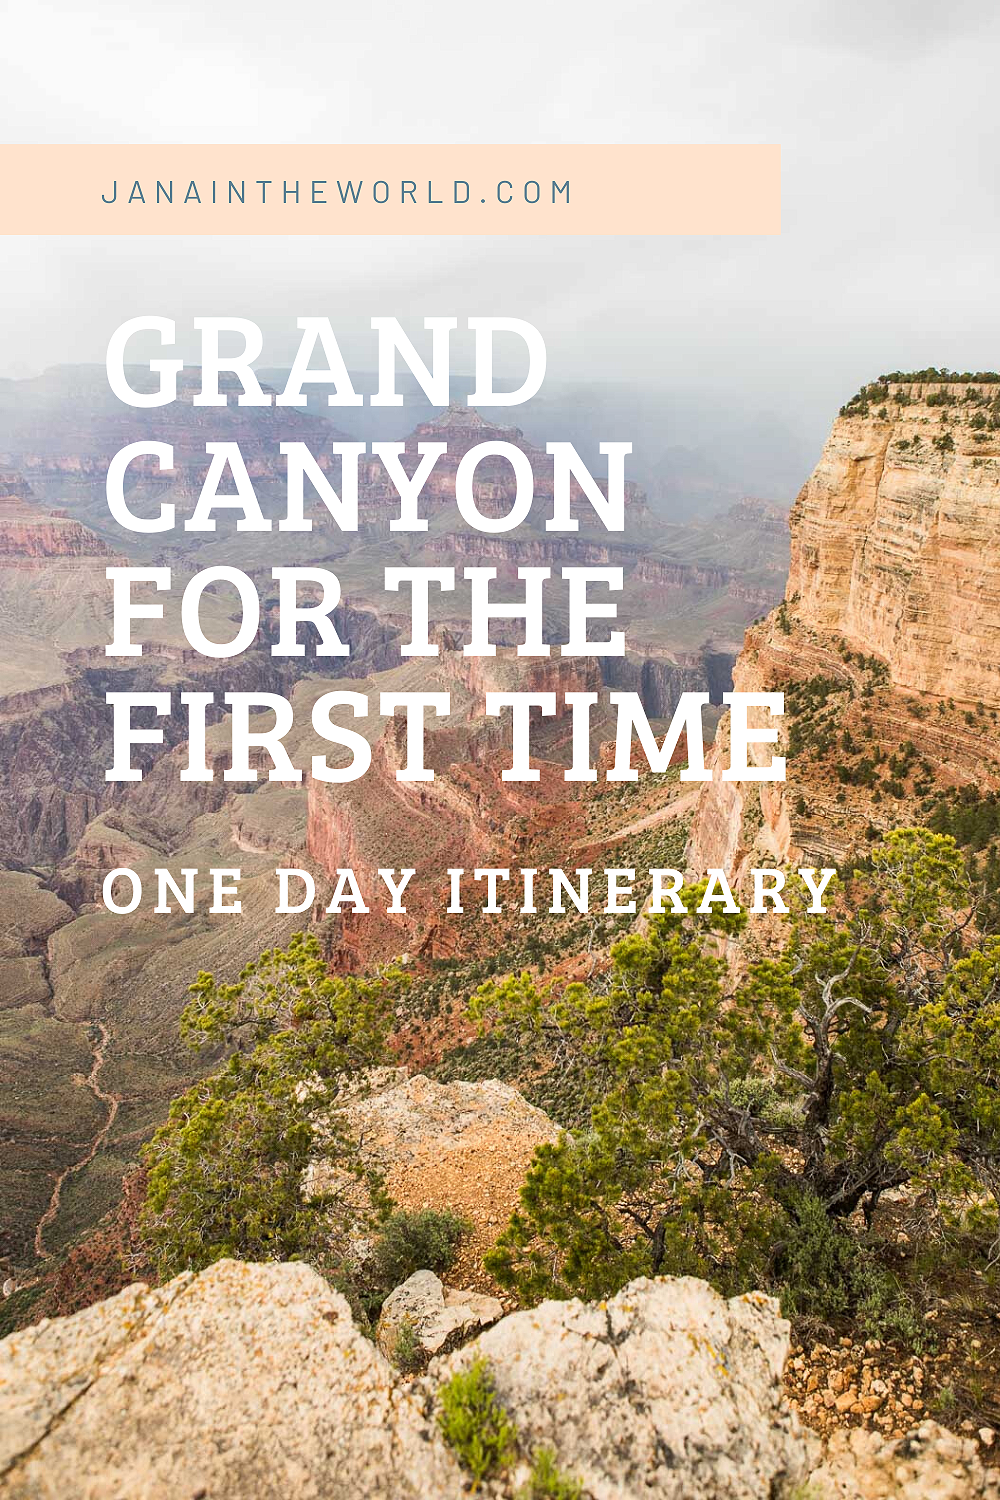 Grand Canyon for the first time_ one day itinerary